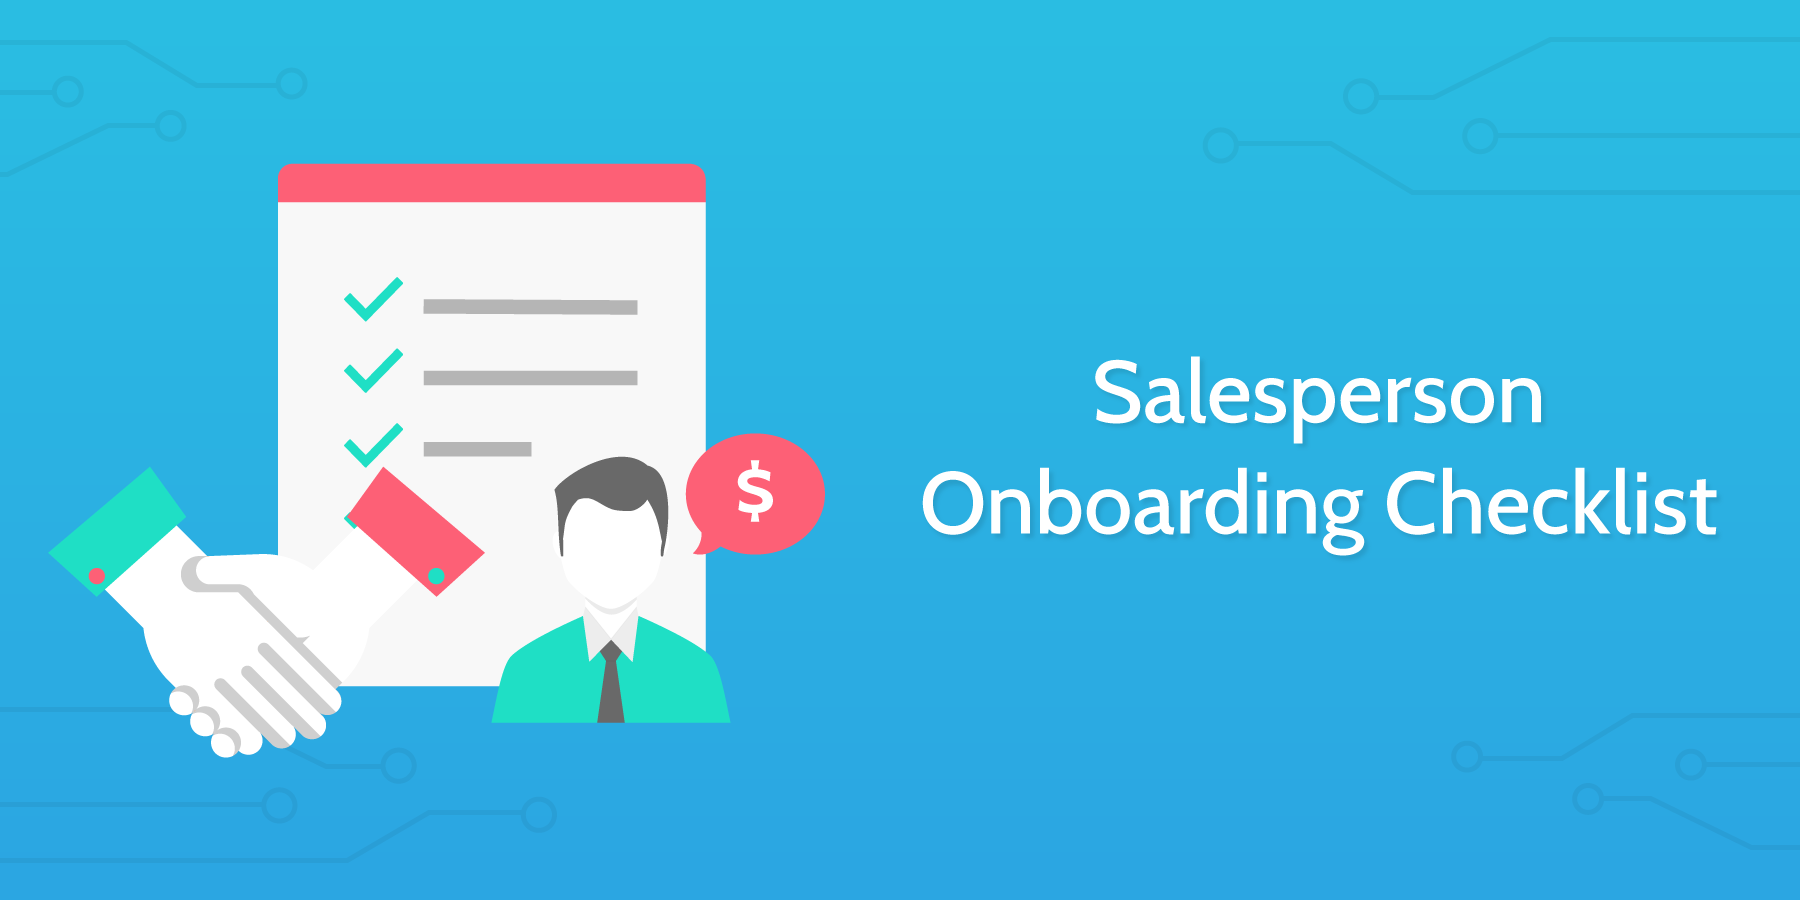 Using a salesperson onboarding checklist